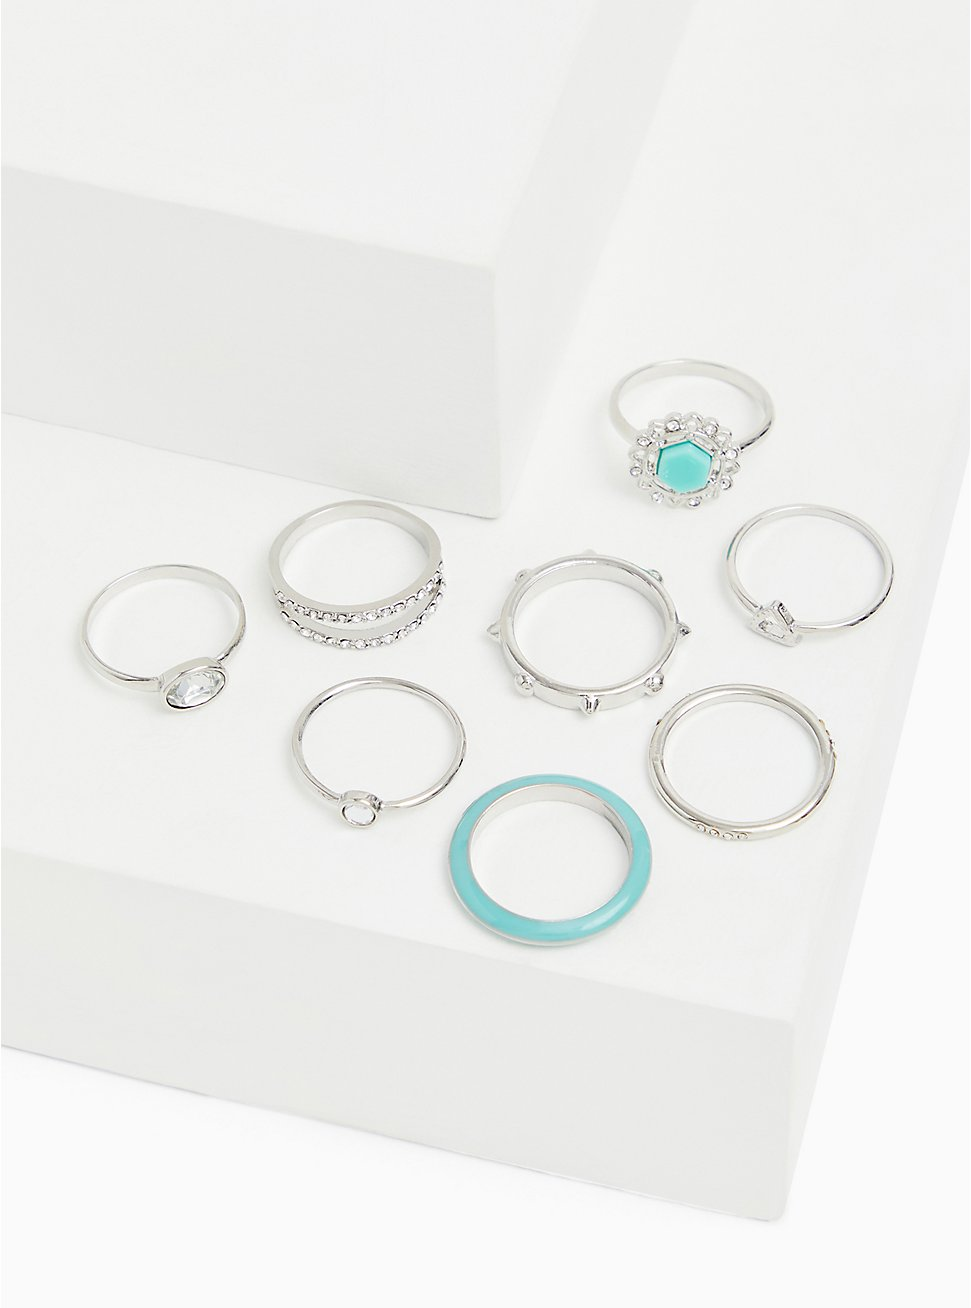 Silver-Tone & Mint Blue Faux Stone Ring Set - Set of 8, TURQUOISE, hi-res